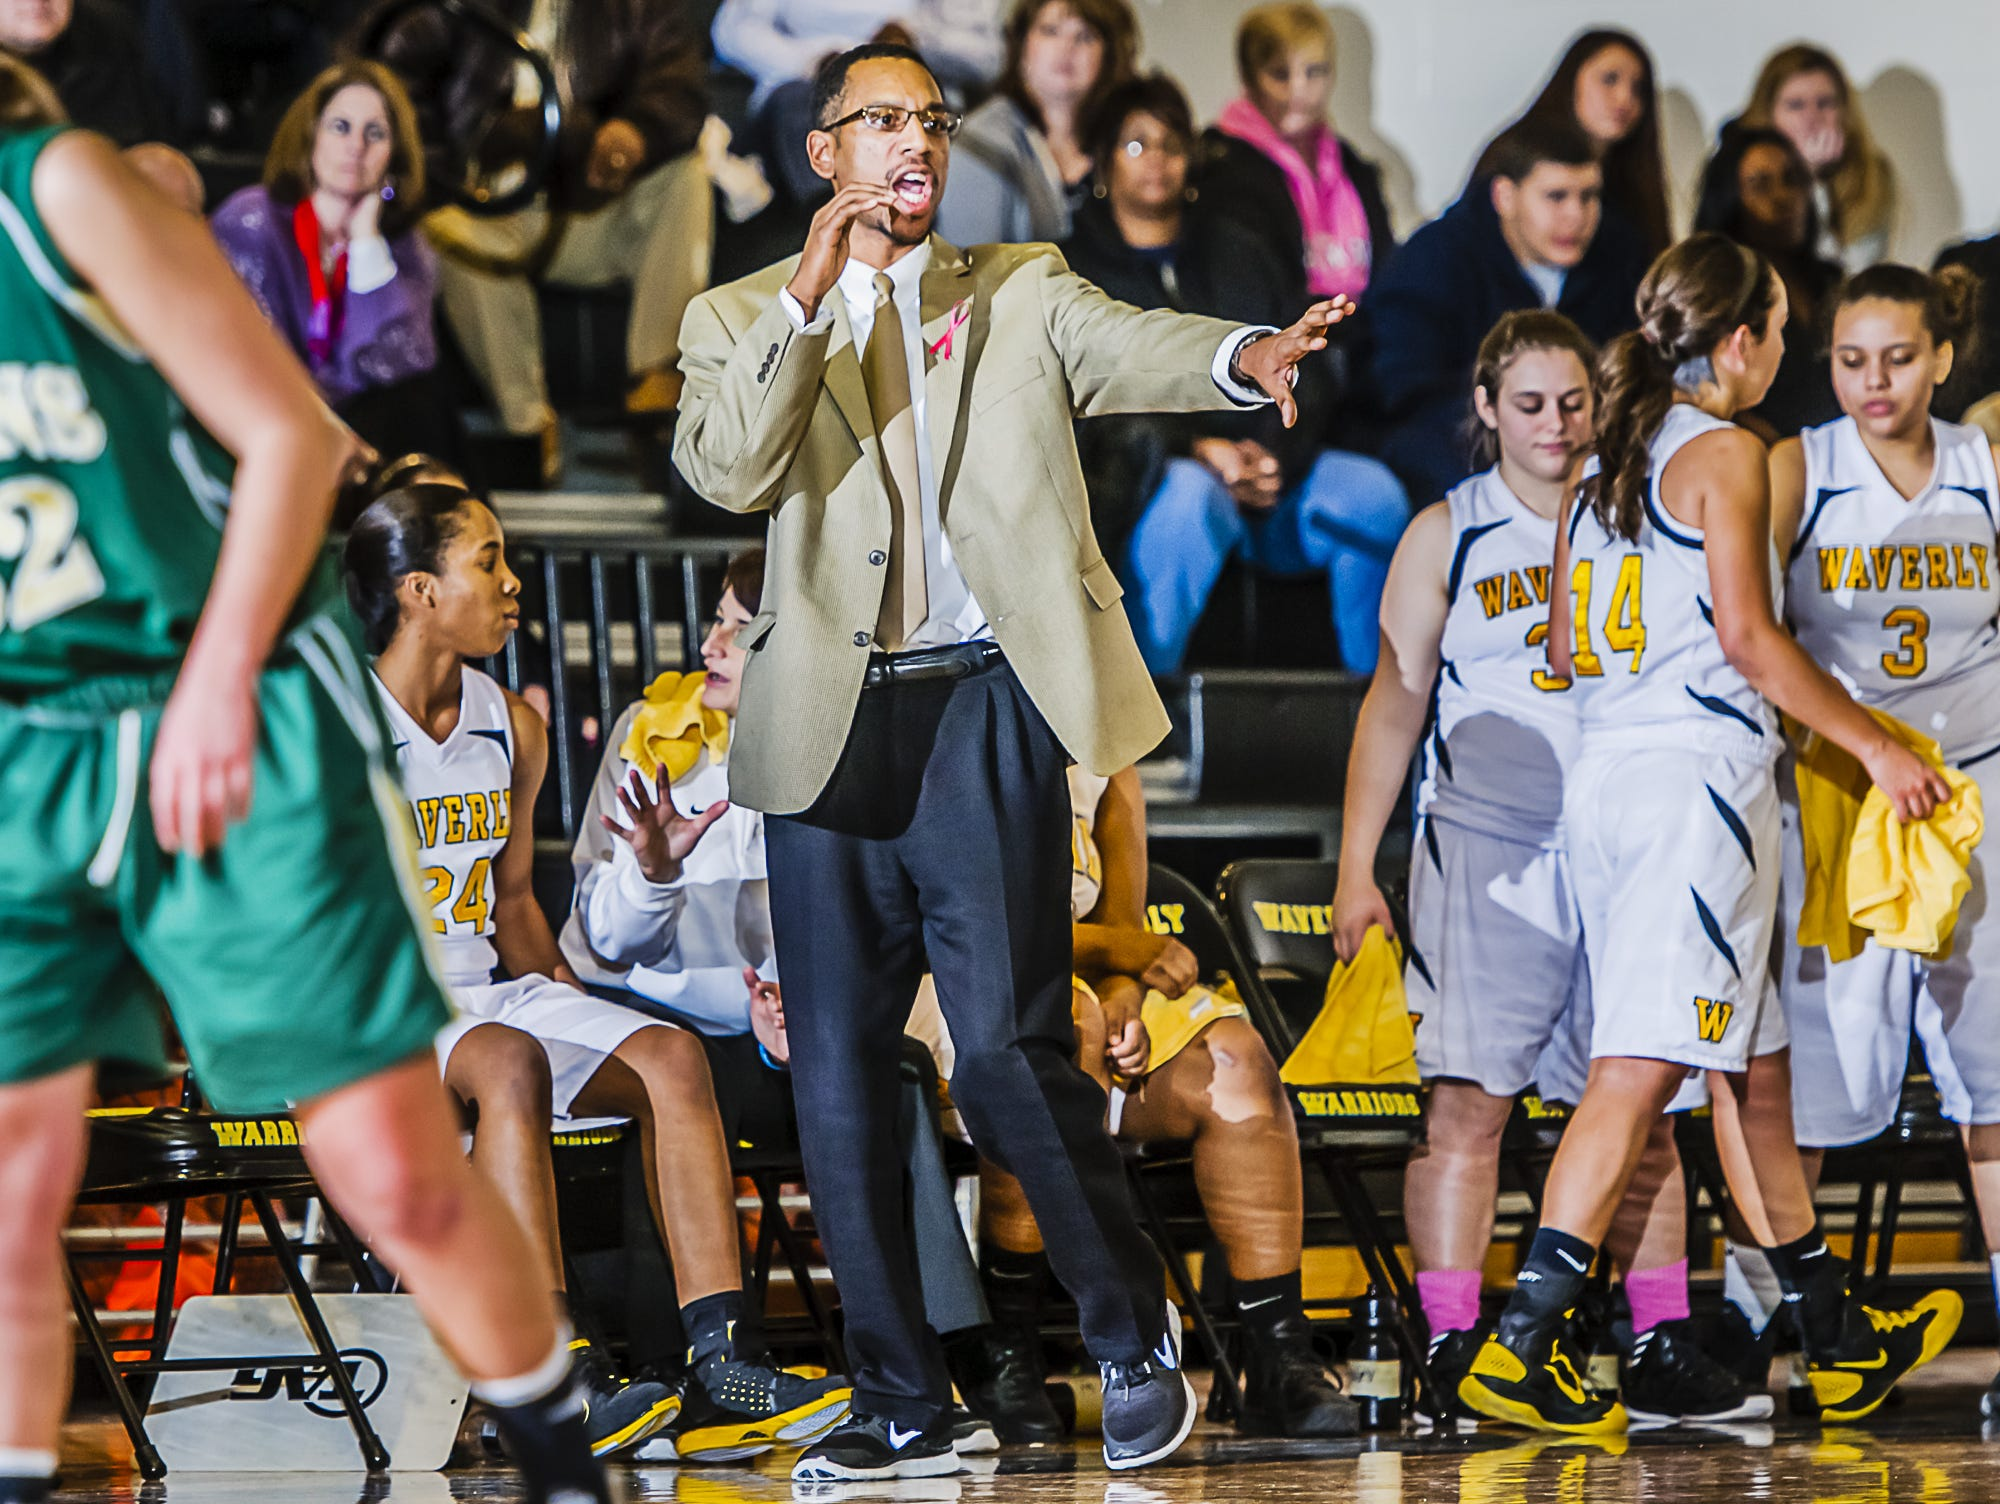 T.J. Hawkins directs the Waverly girls basketball team as they take on Lumen Christi in 2013.